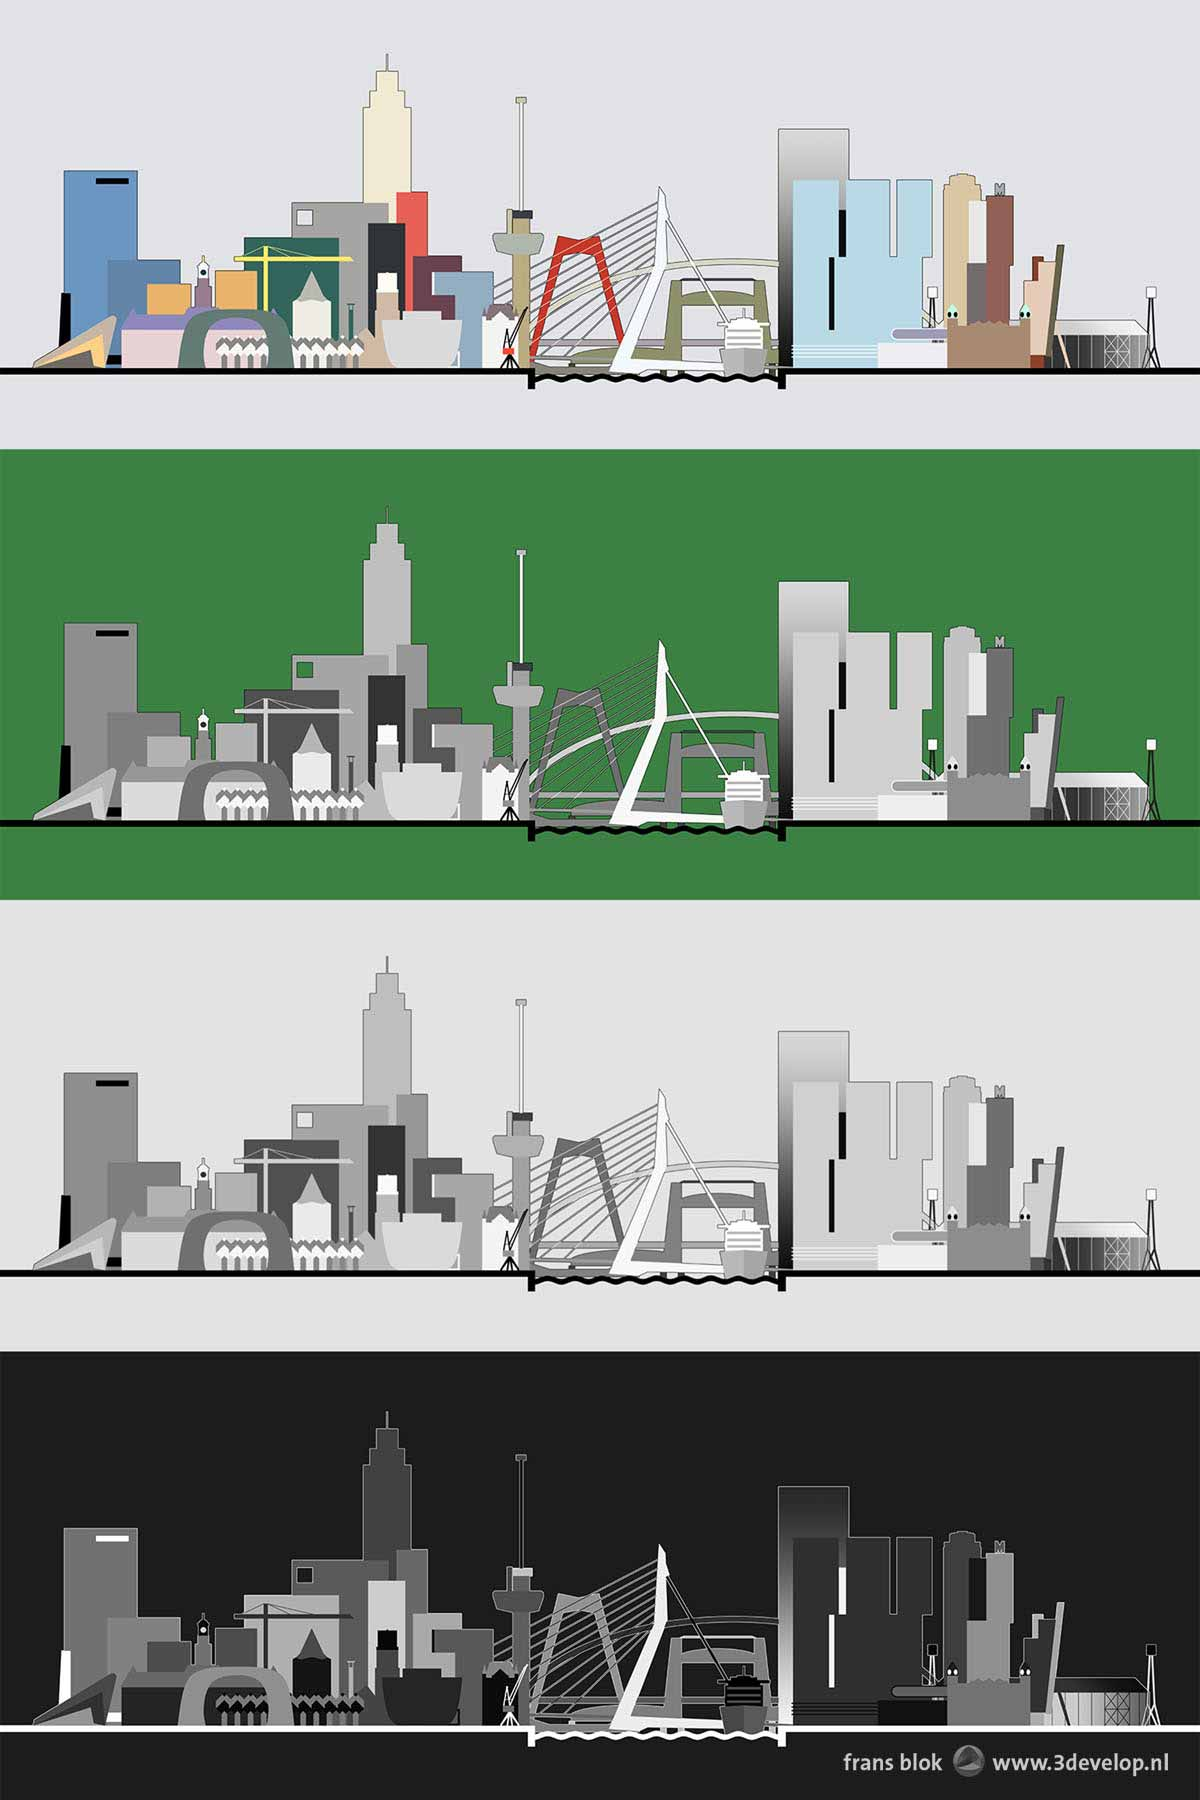 A graphical representation of the Rotterdam skyline with all important buildings, bridges and other icons, in four different color schemes